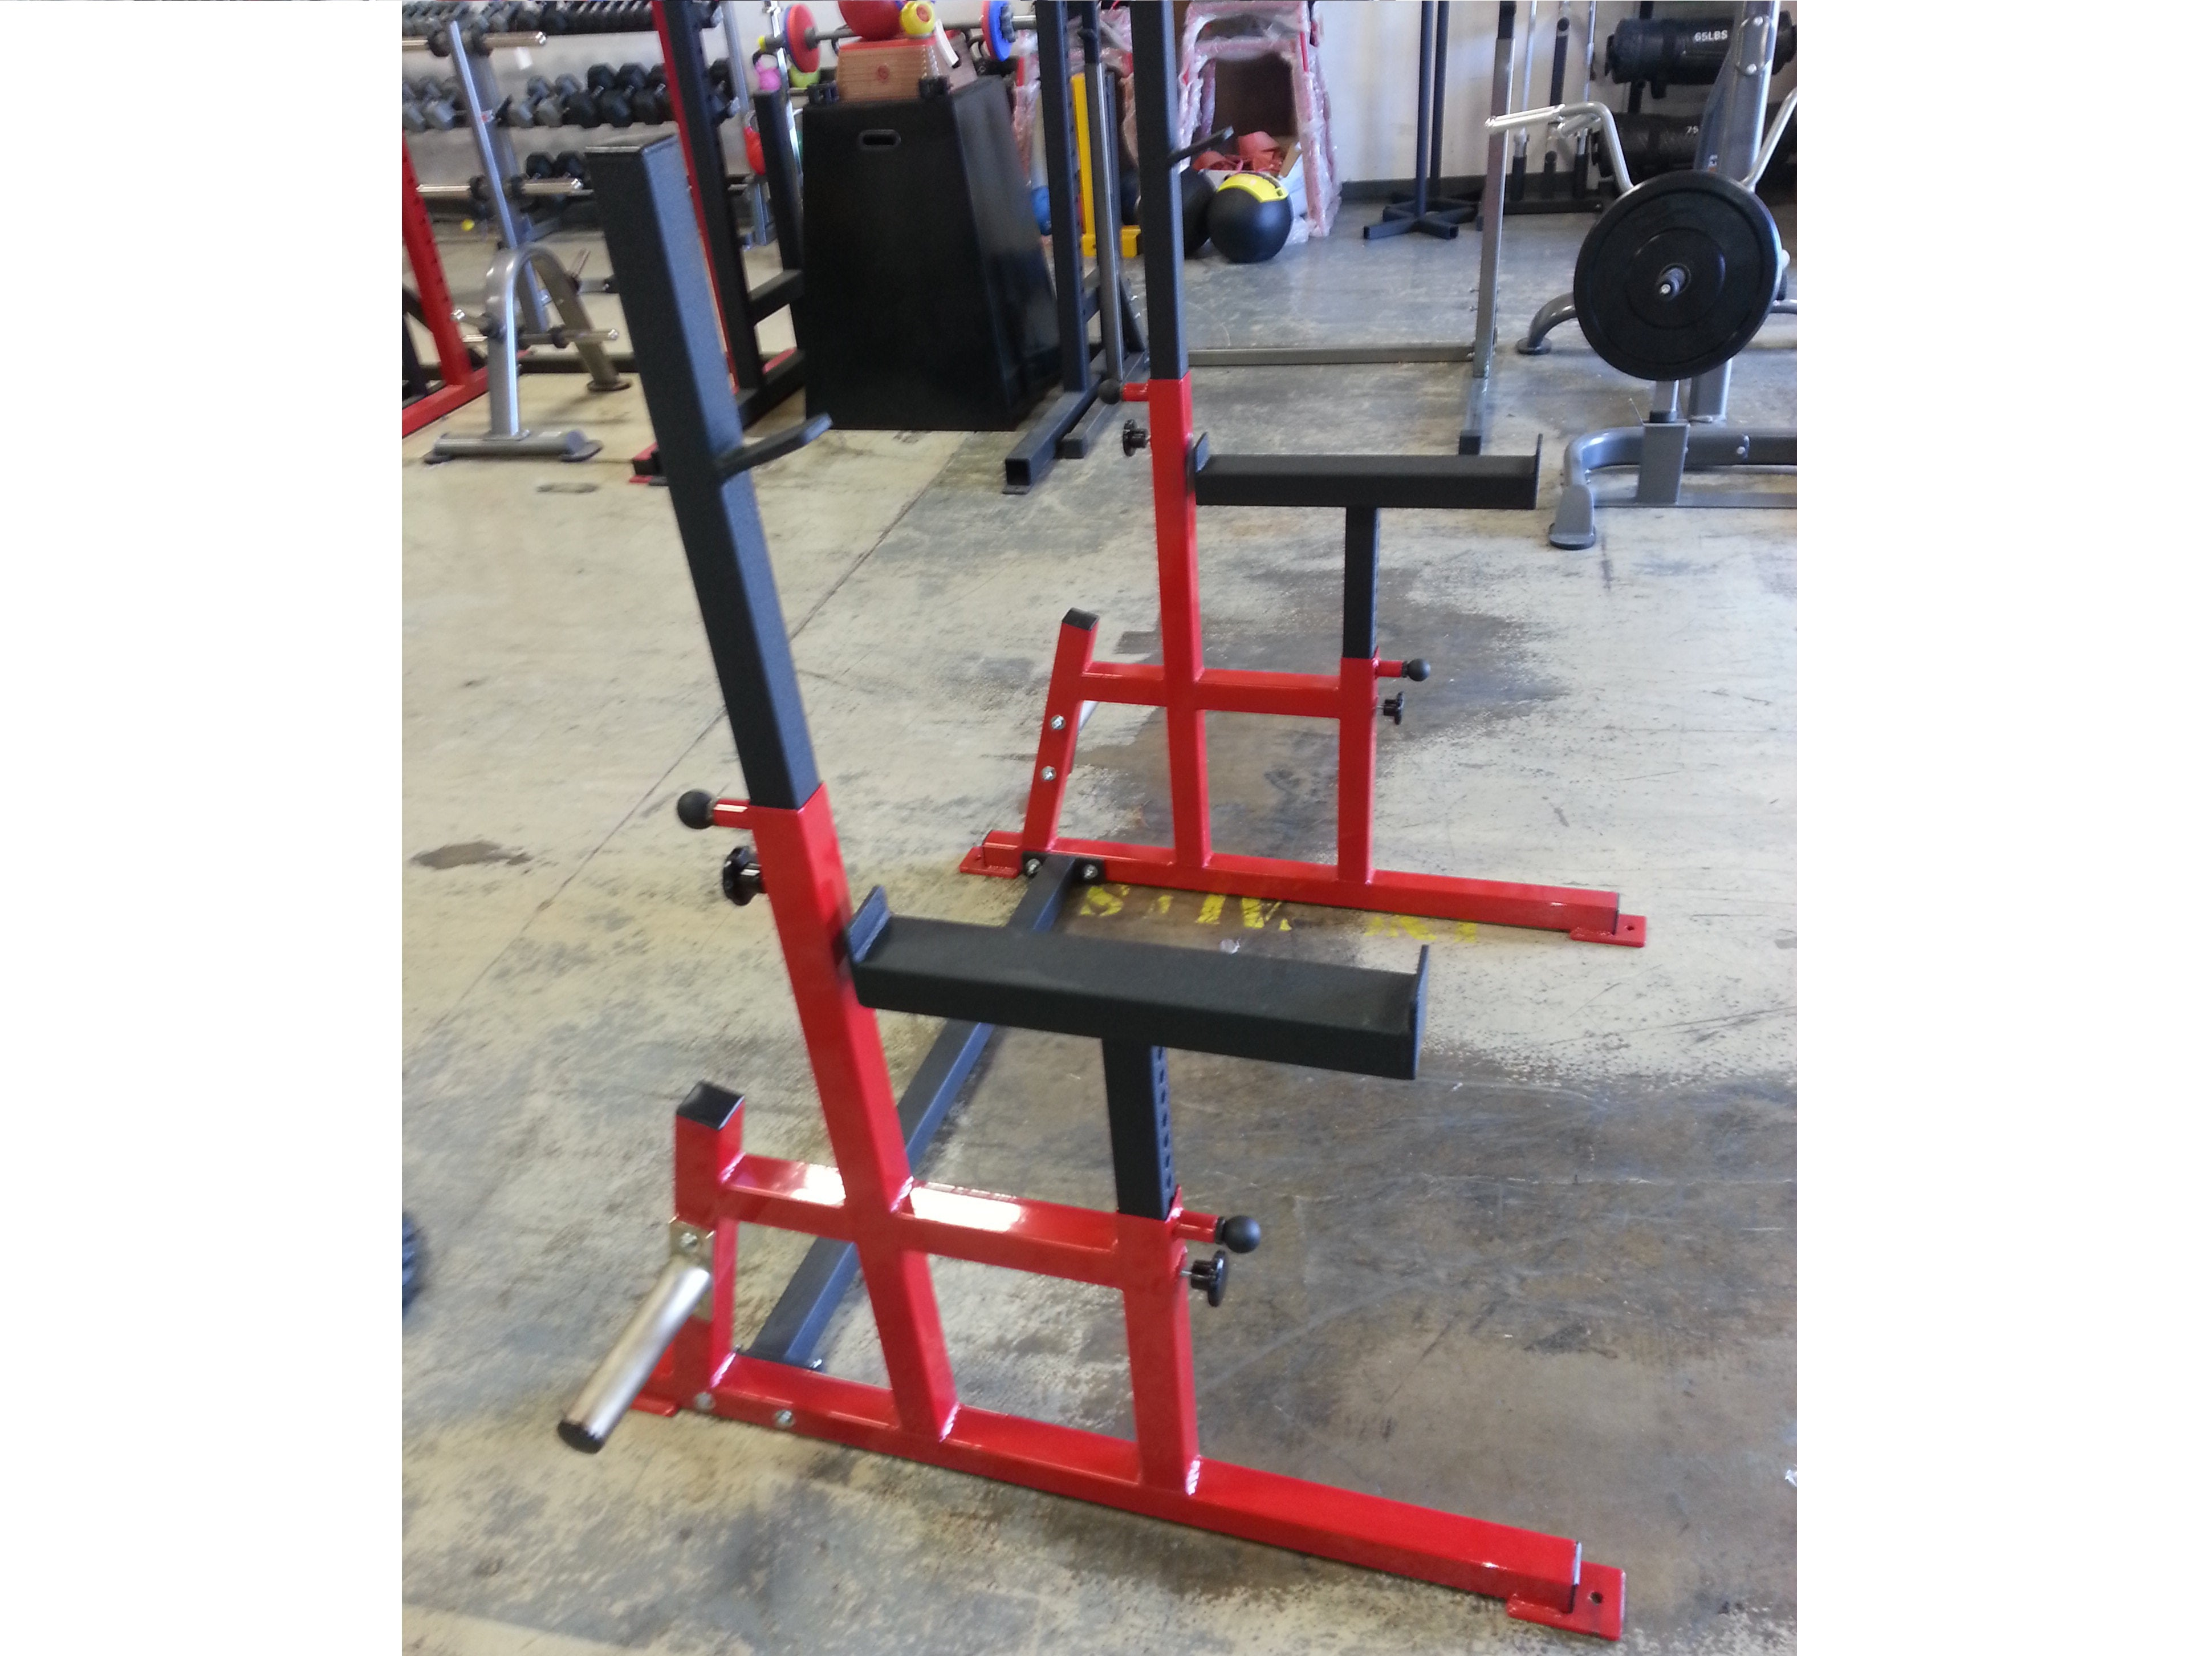 Connected Squat Rack Deluxe w/ Spot 2x2